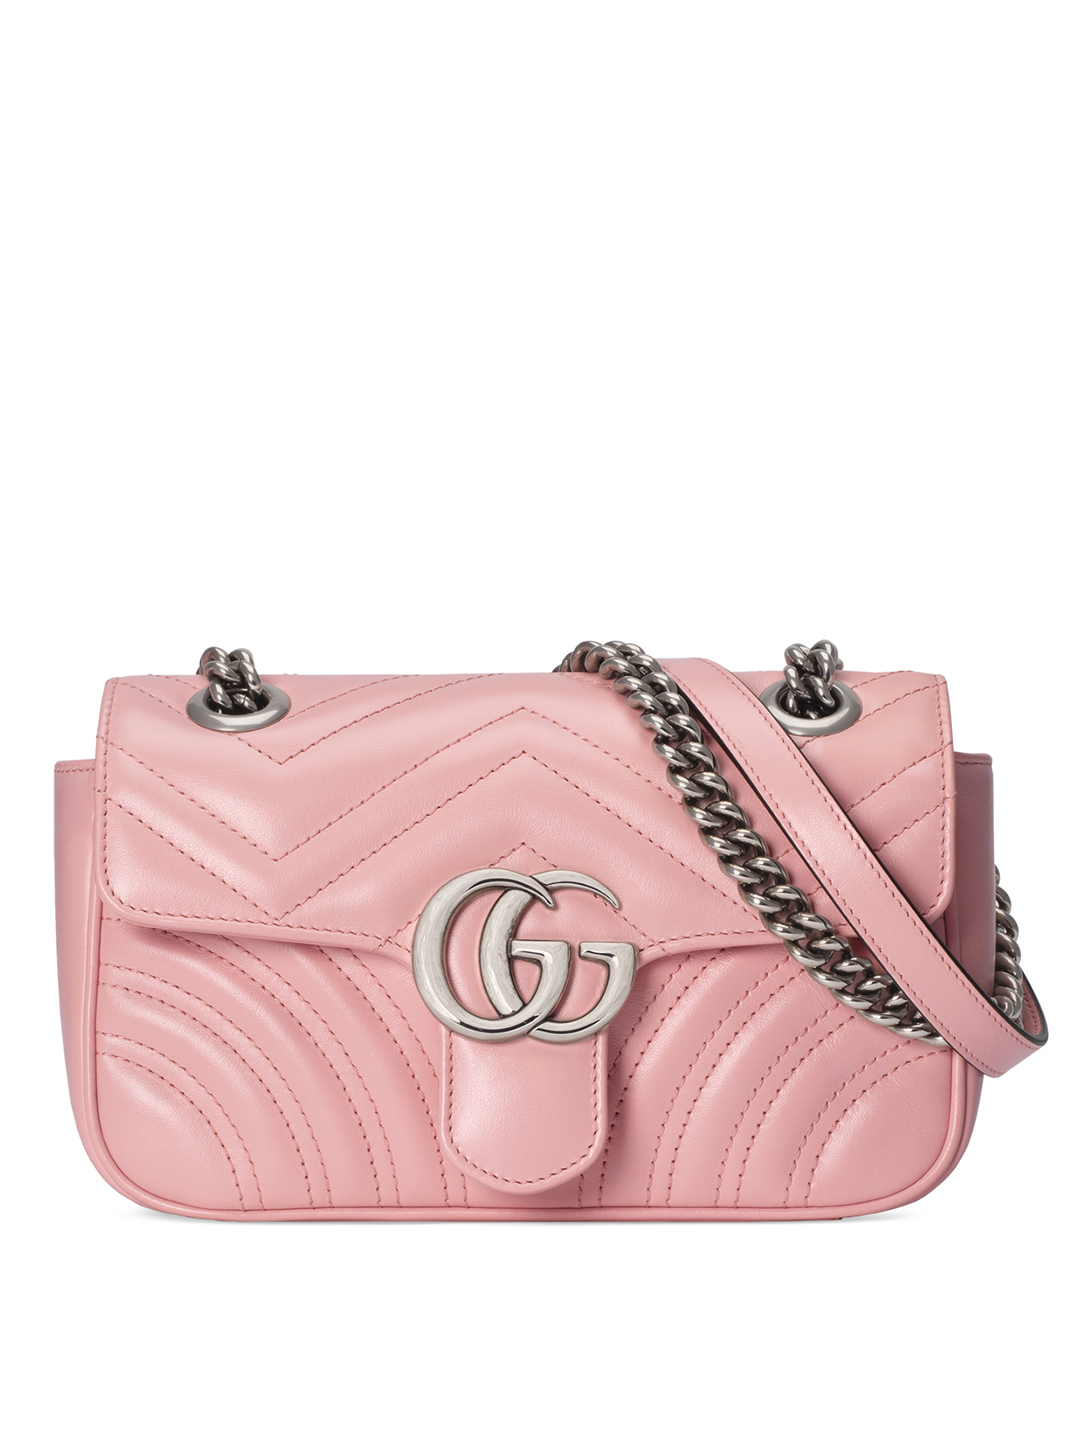 GUCCI Mini GG Marmont Leather Shoulder Bag Women's Pink